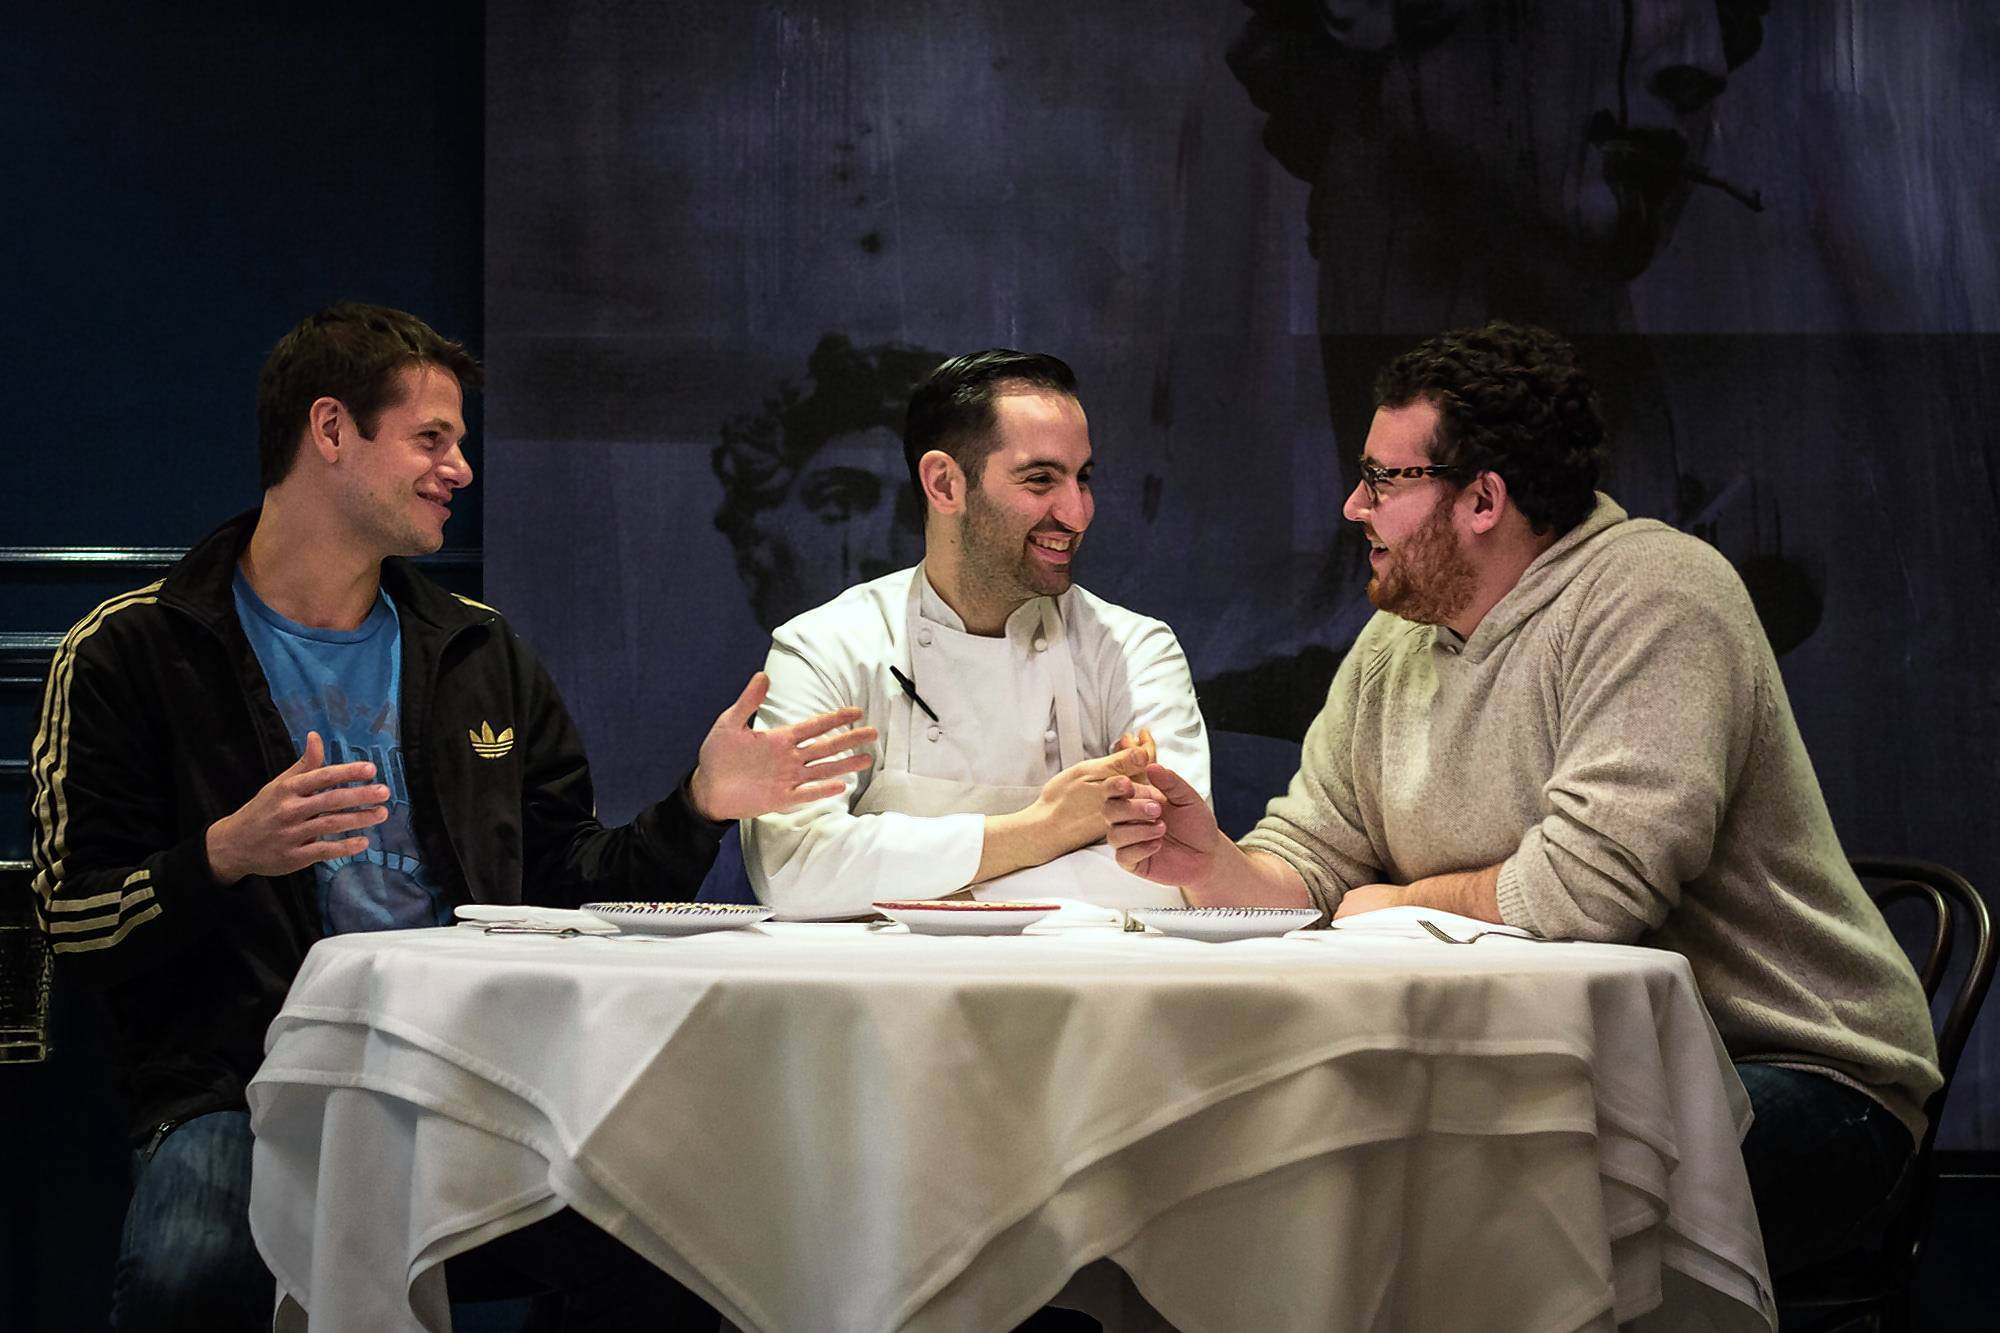 Pictures: Carbone in Greenwich Village - Carbone Chefs